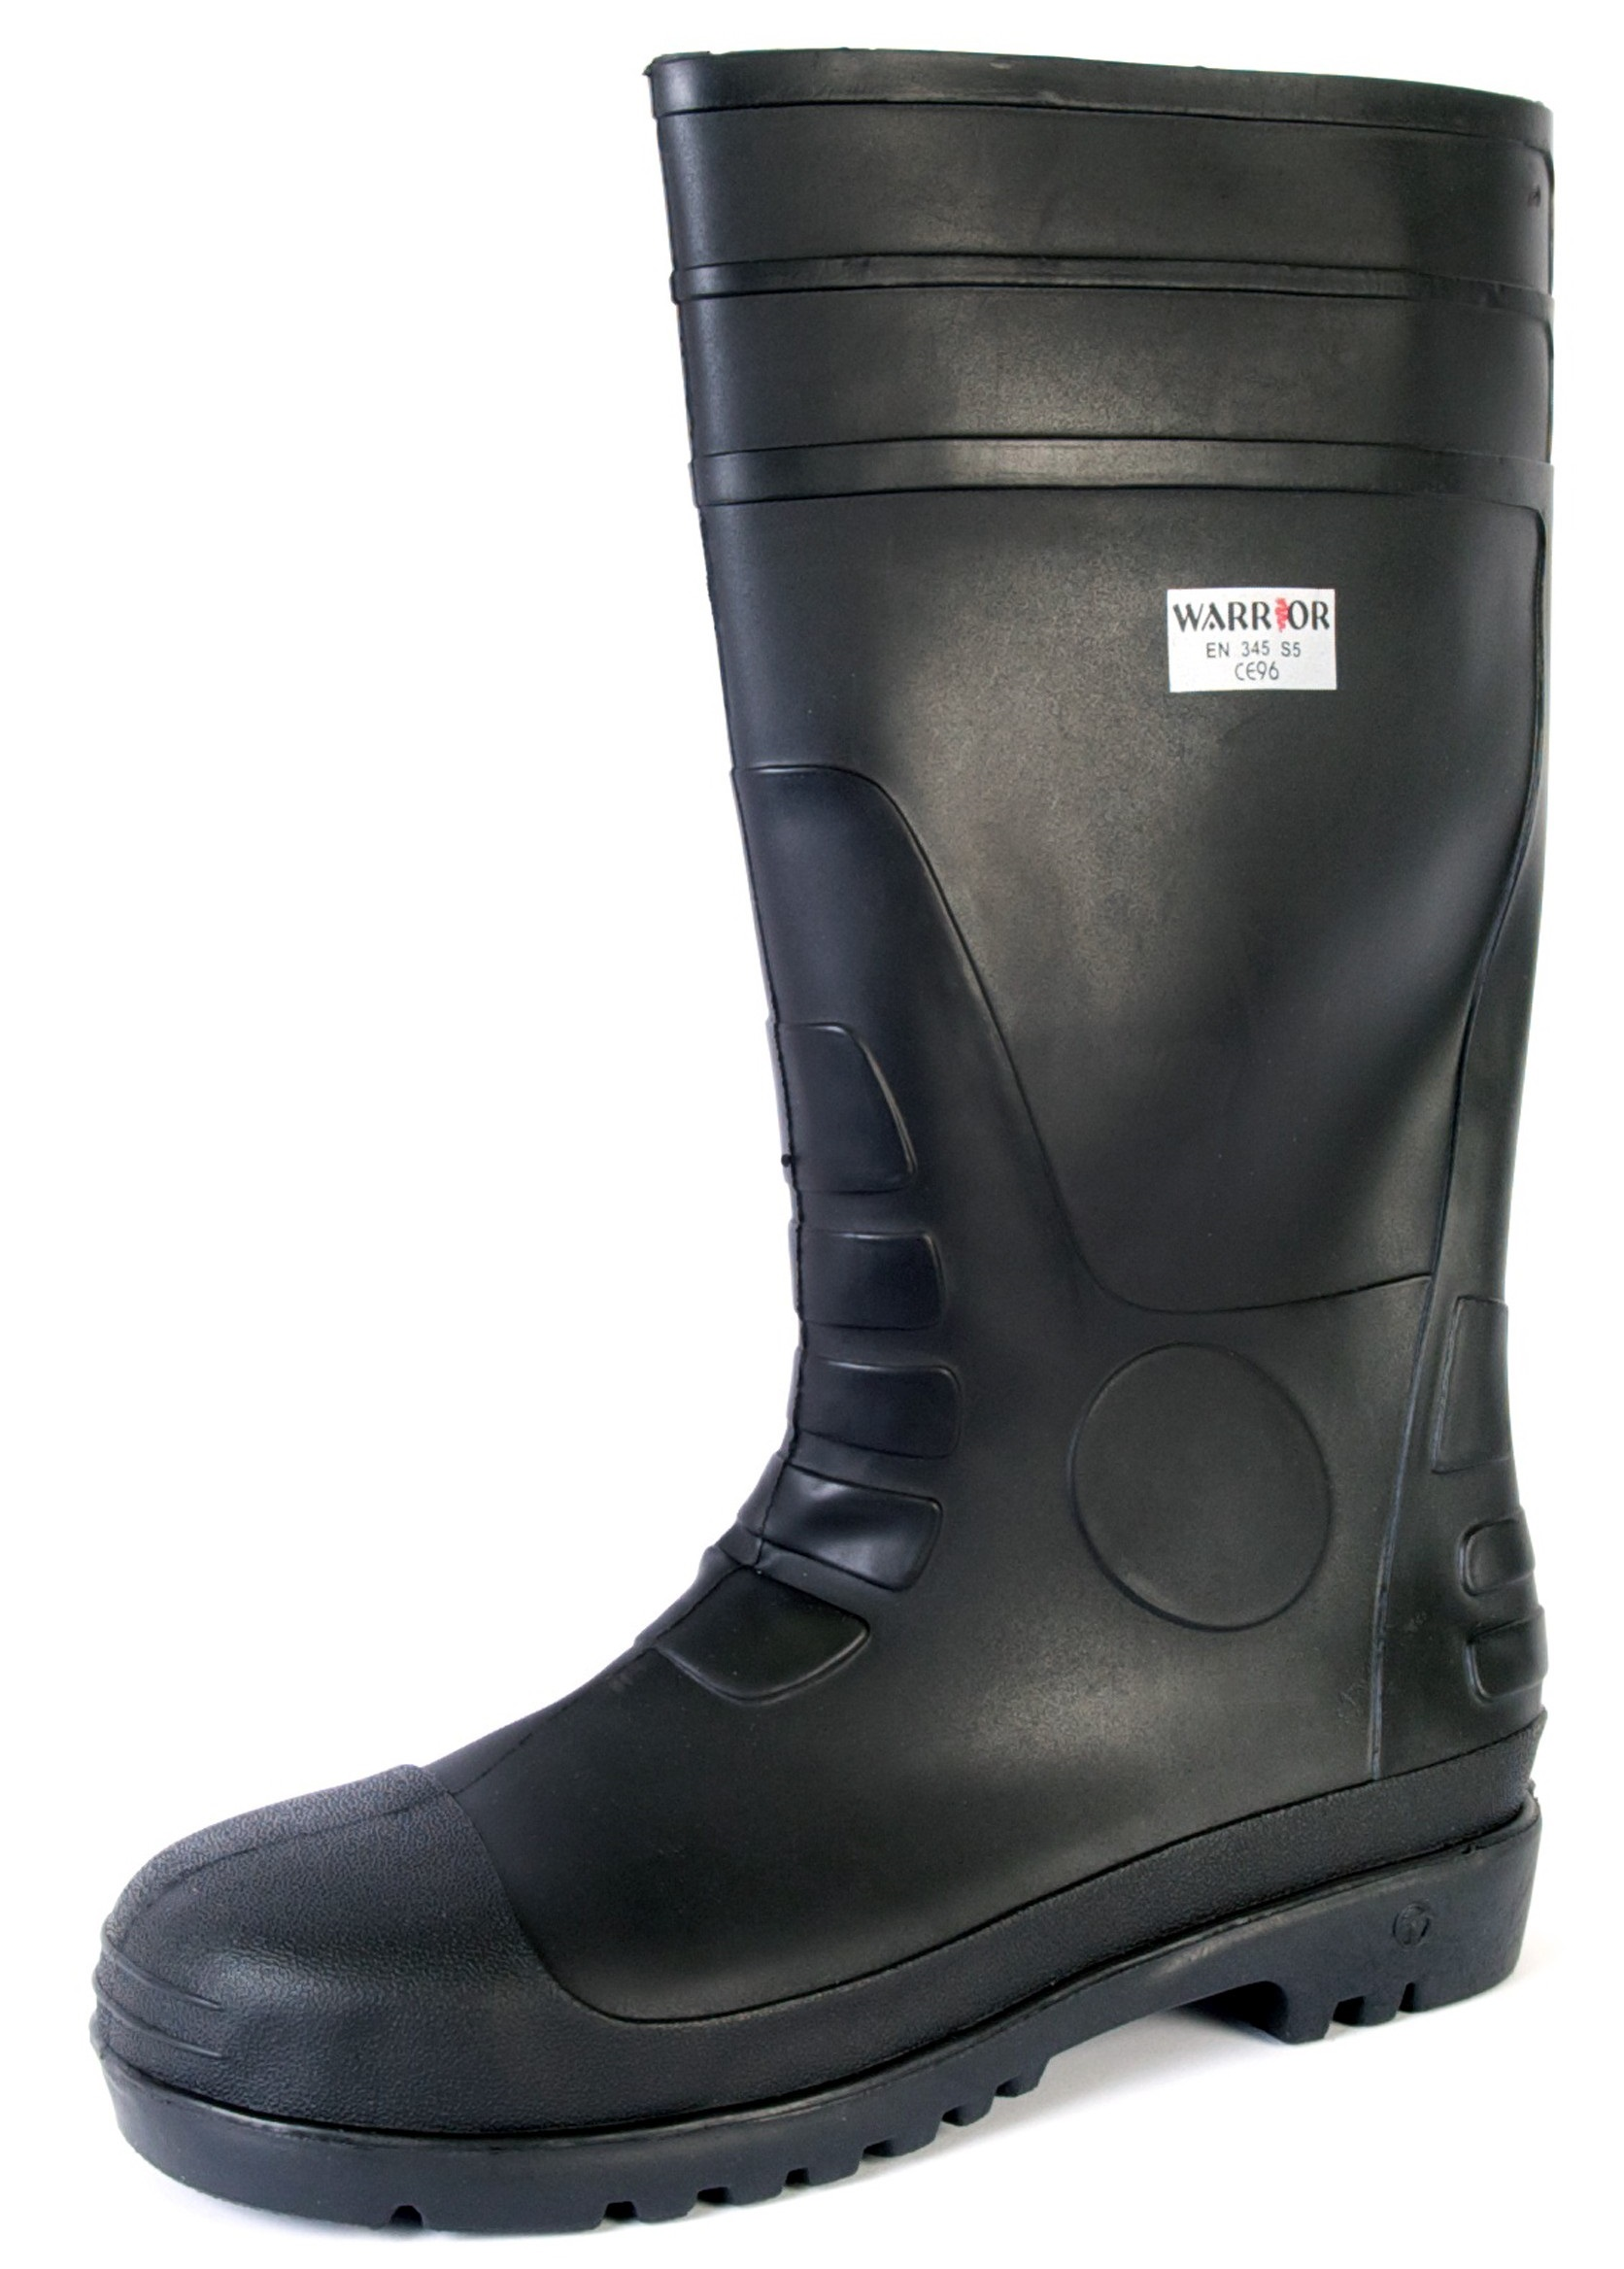 Black Safety Wellington Boot